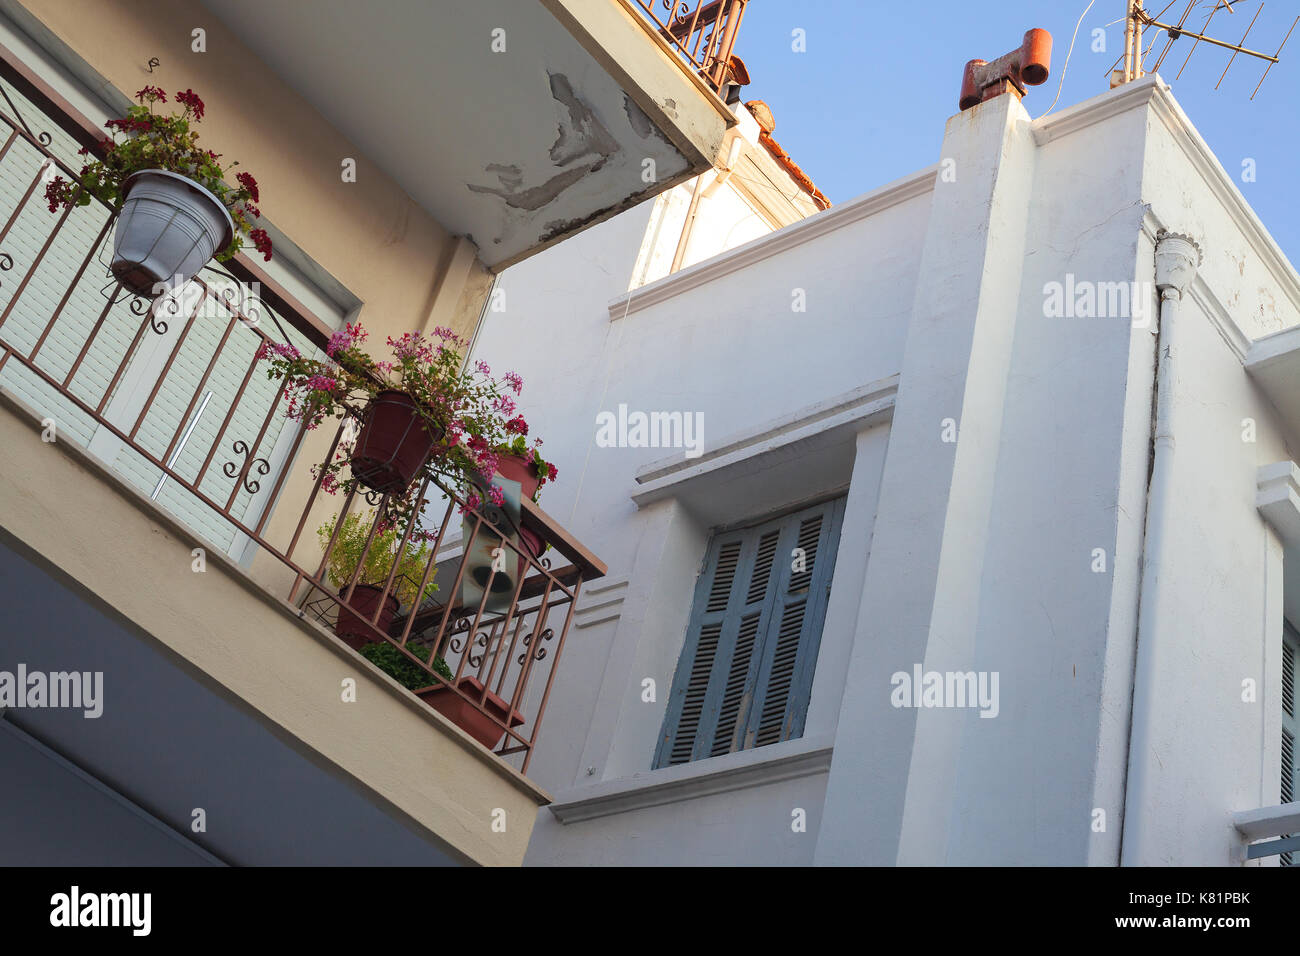 Part of buildings,classical Greek architectural style. - Stock Image